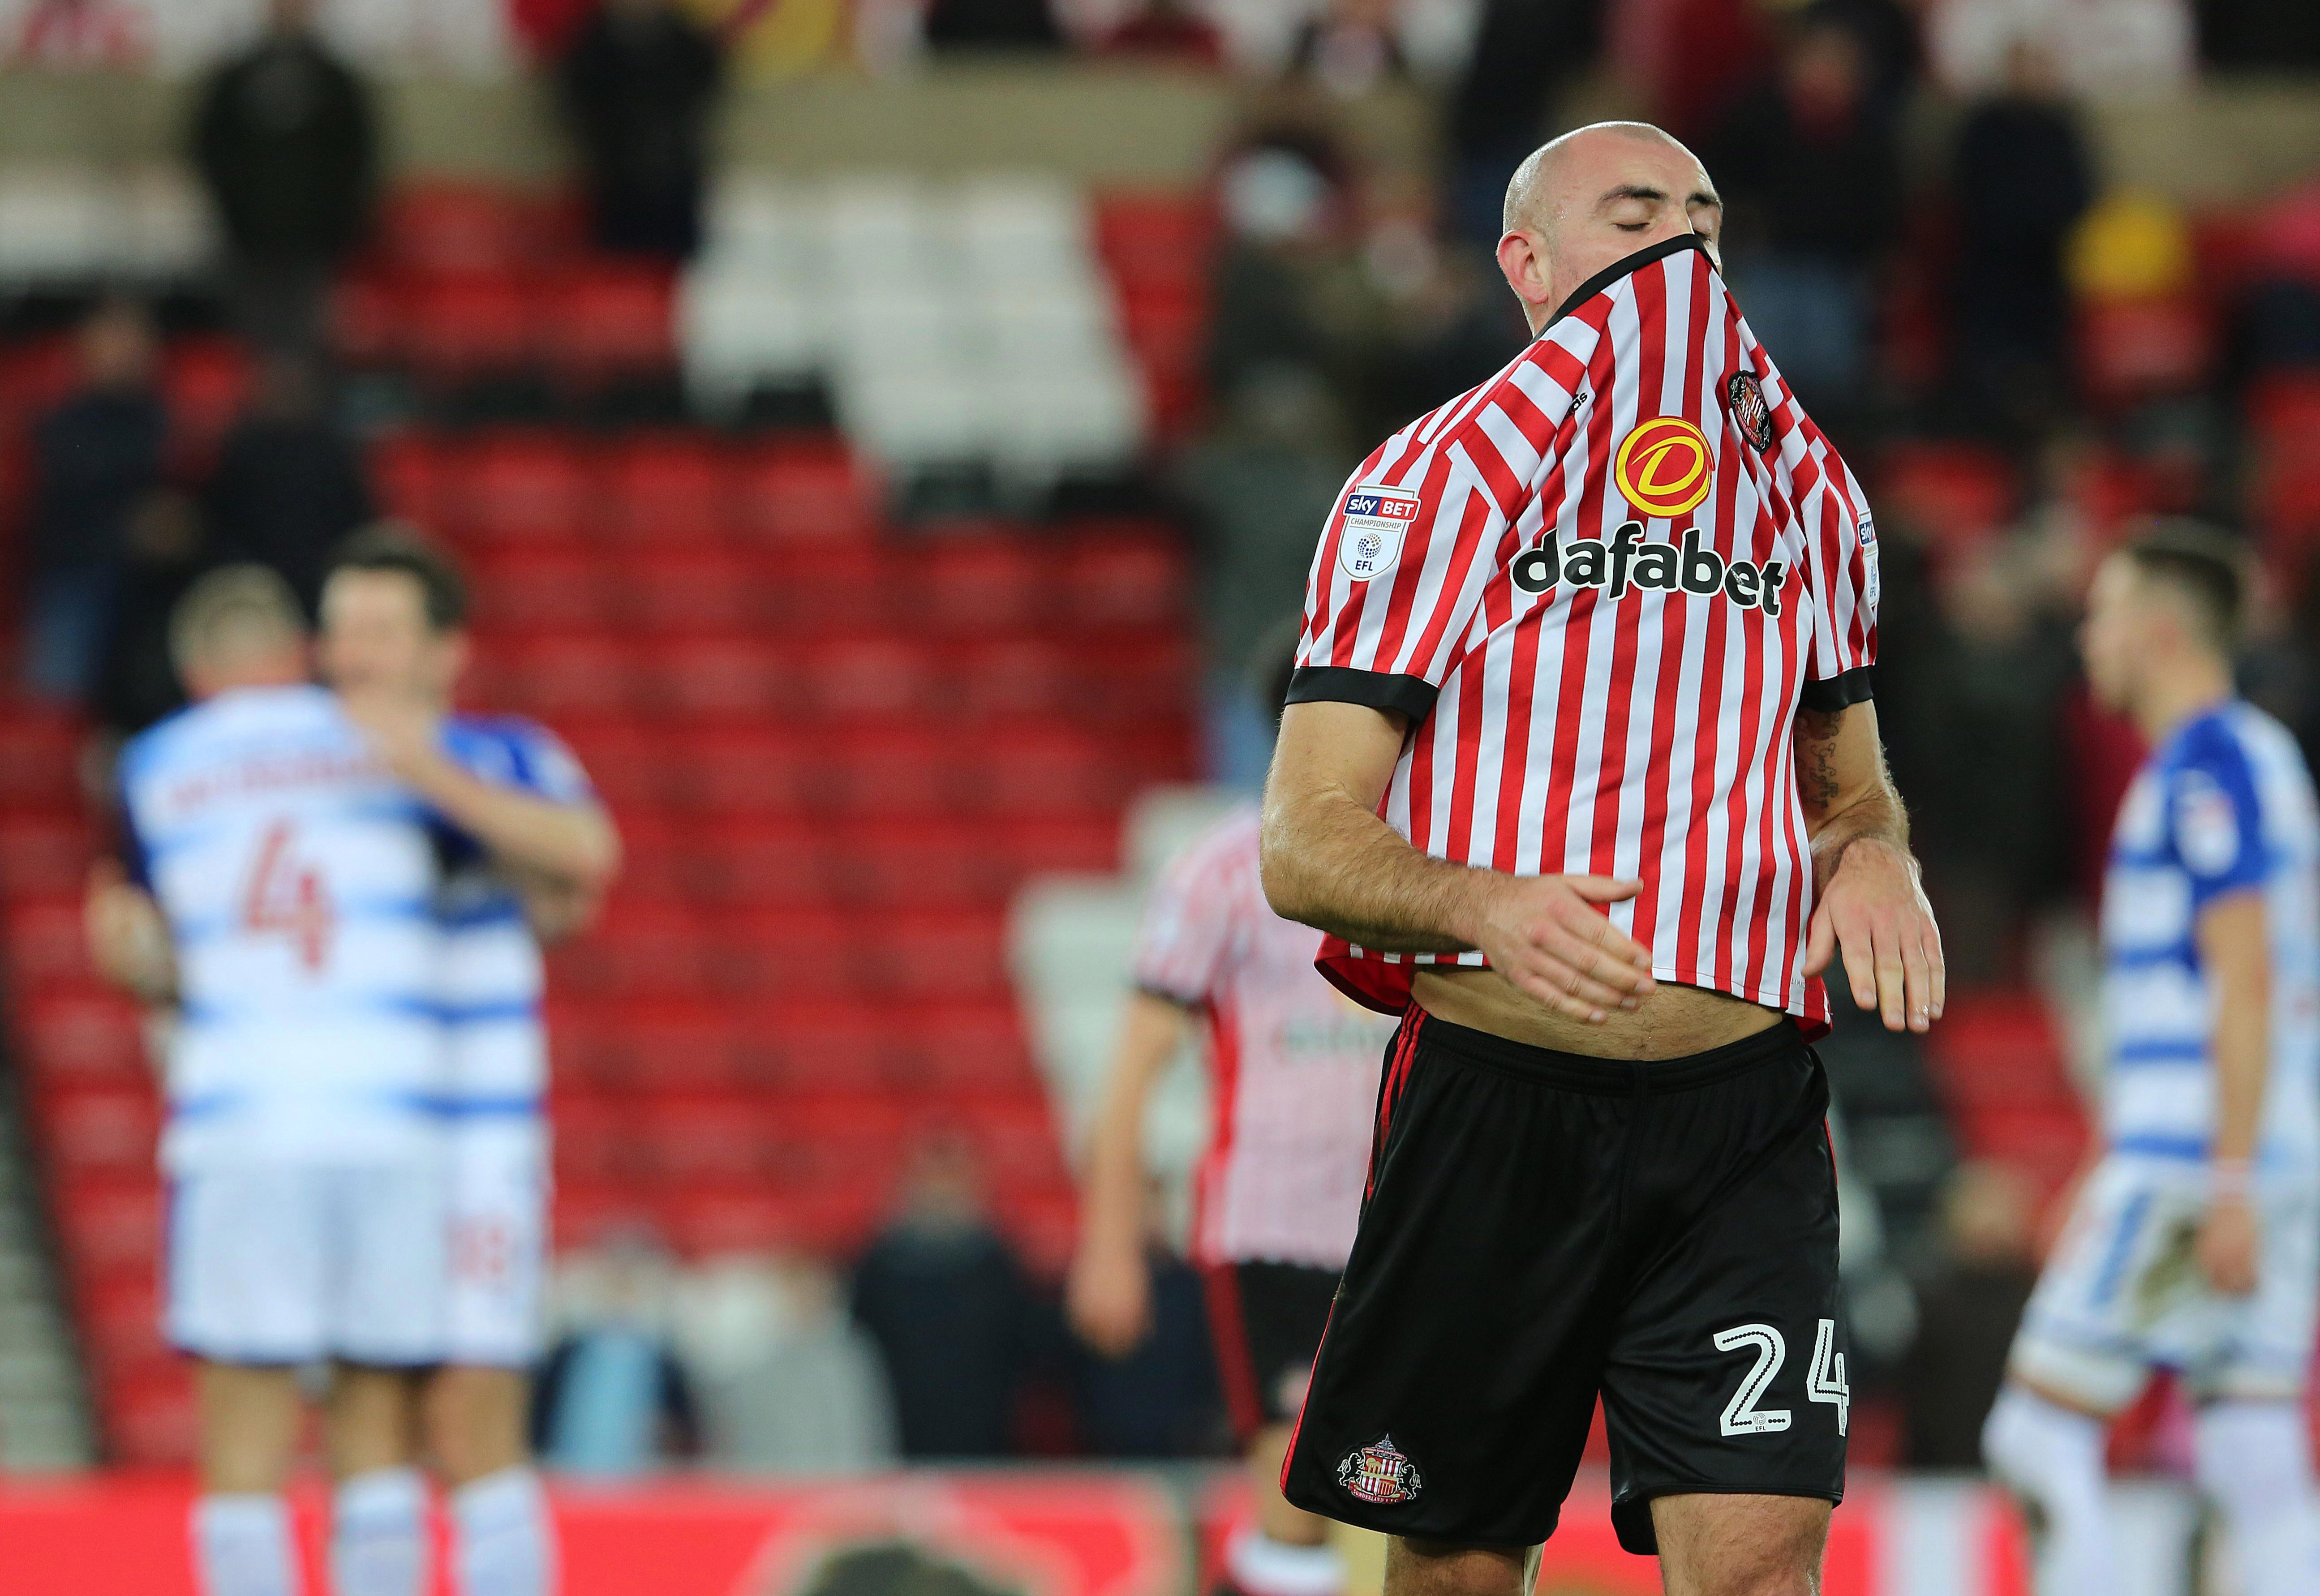 No wonder Darron Gibson pulled his shirt up over his nose